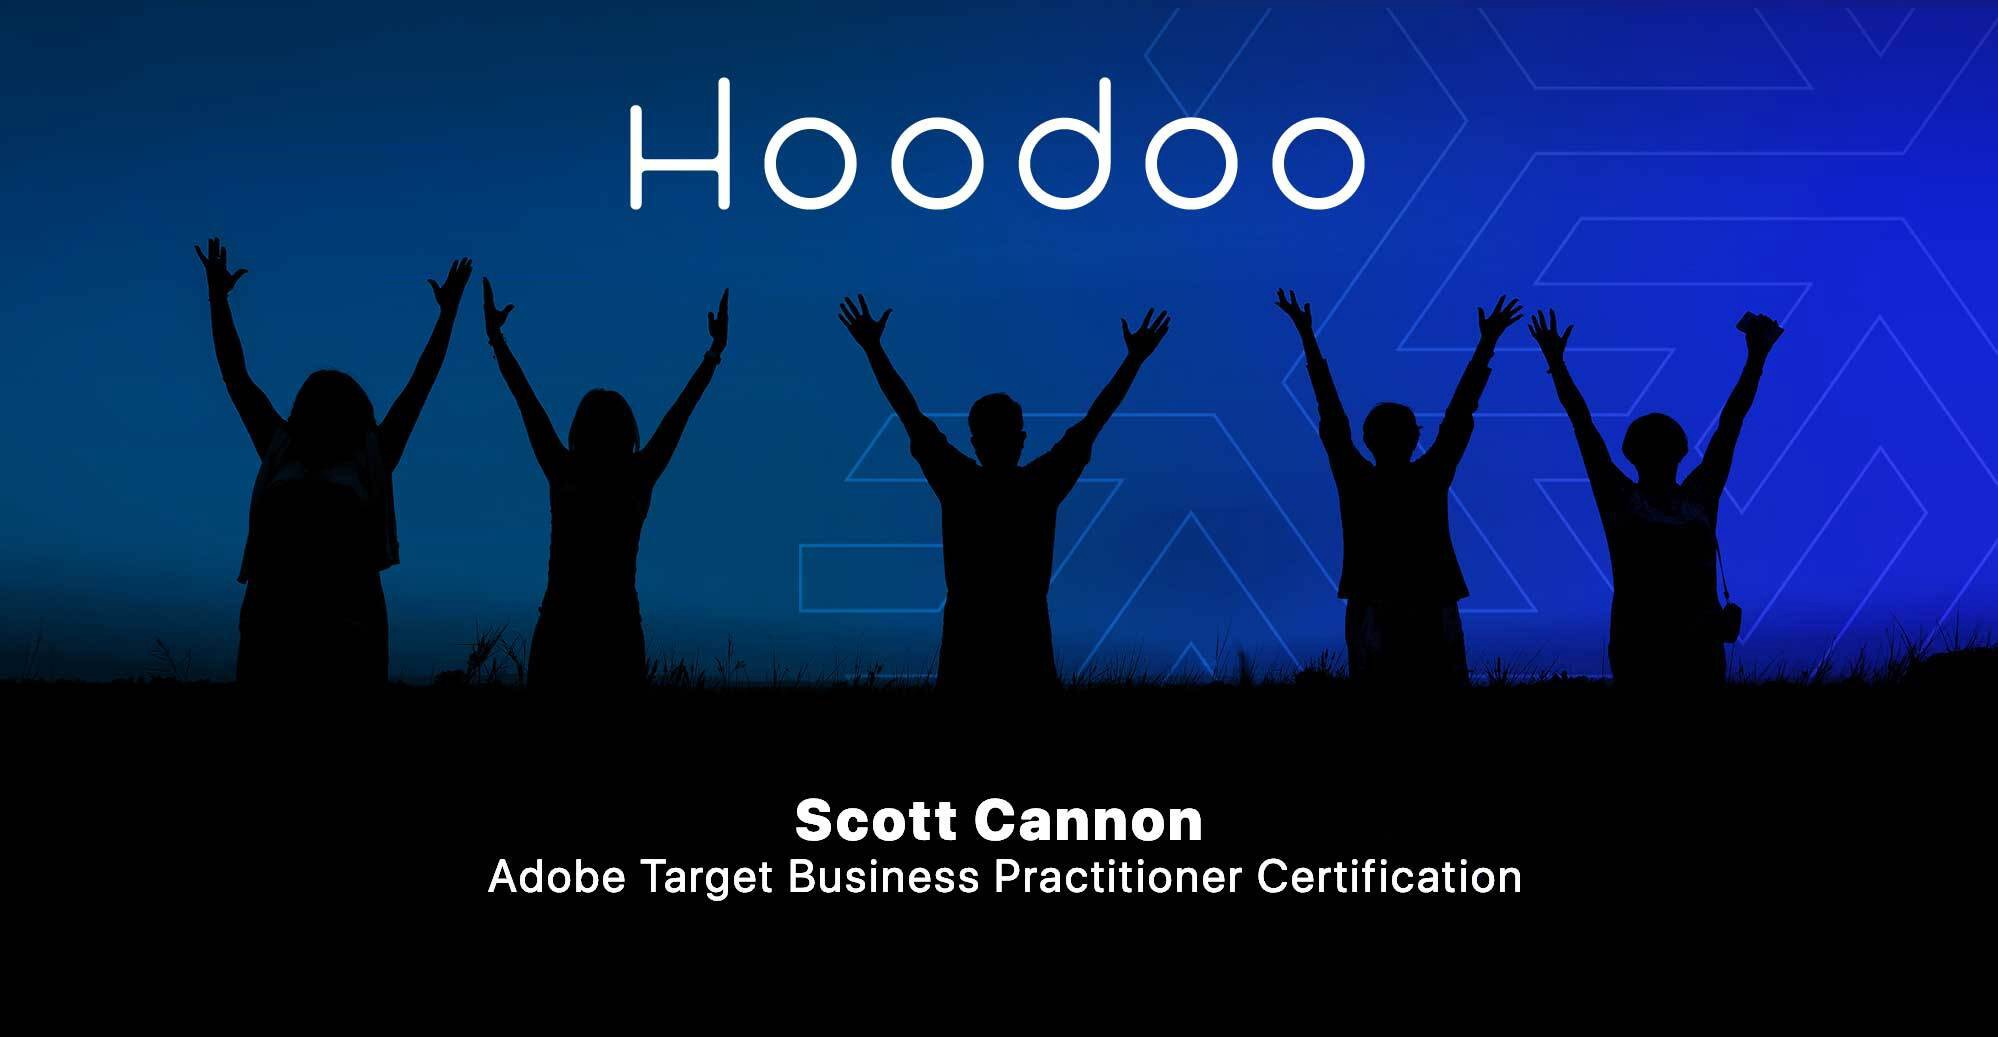 Scott Cannon Completes Adobe Target Business Practitioner Certification